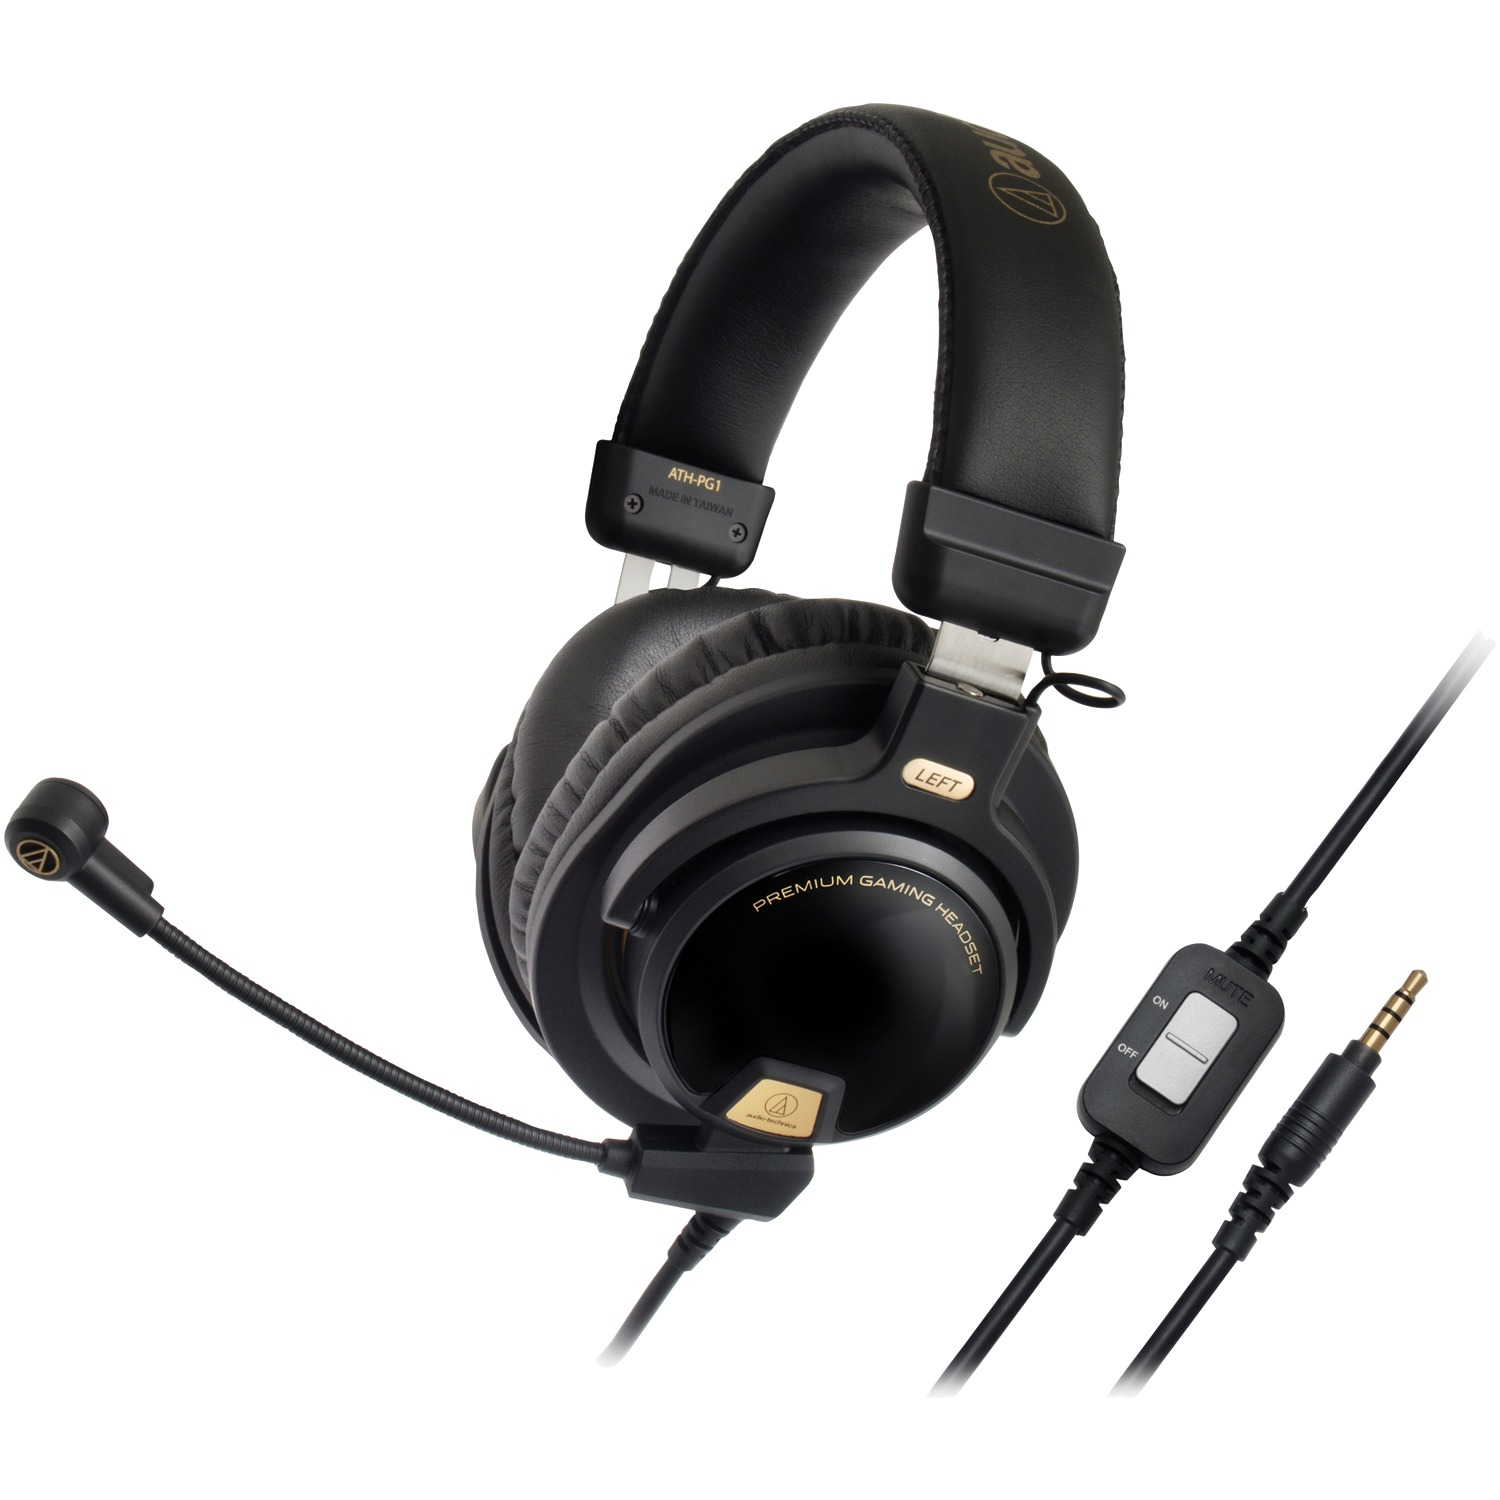 Audio-Technica ATH-PG1 Premium Gaming Headset